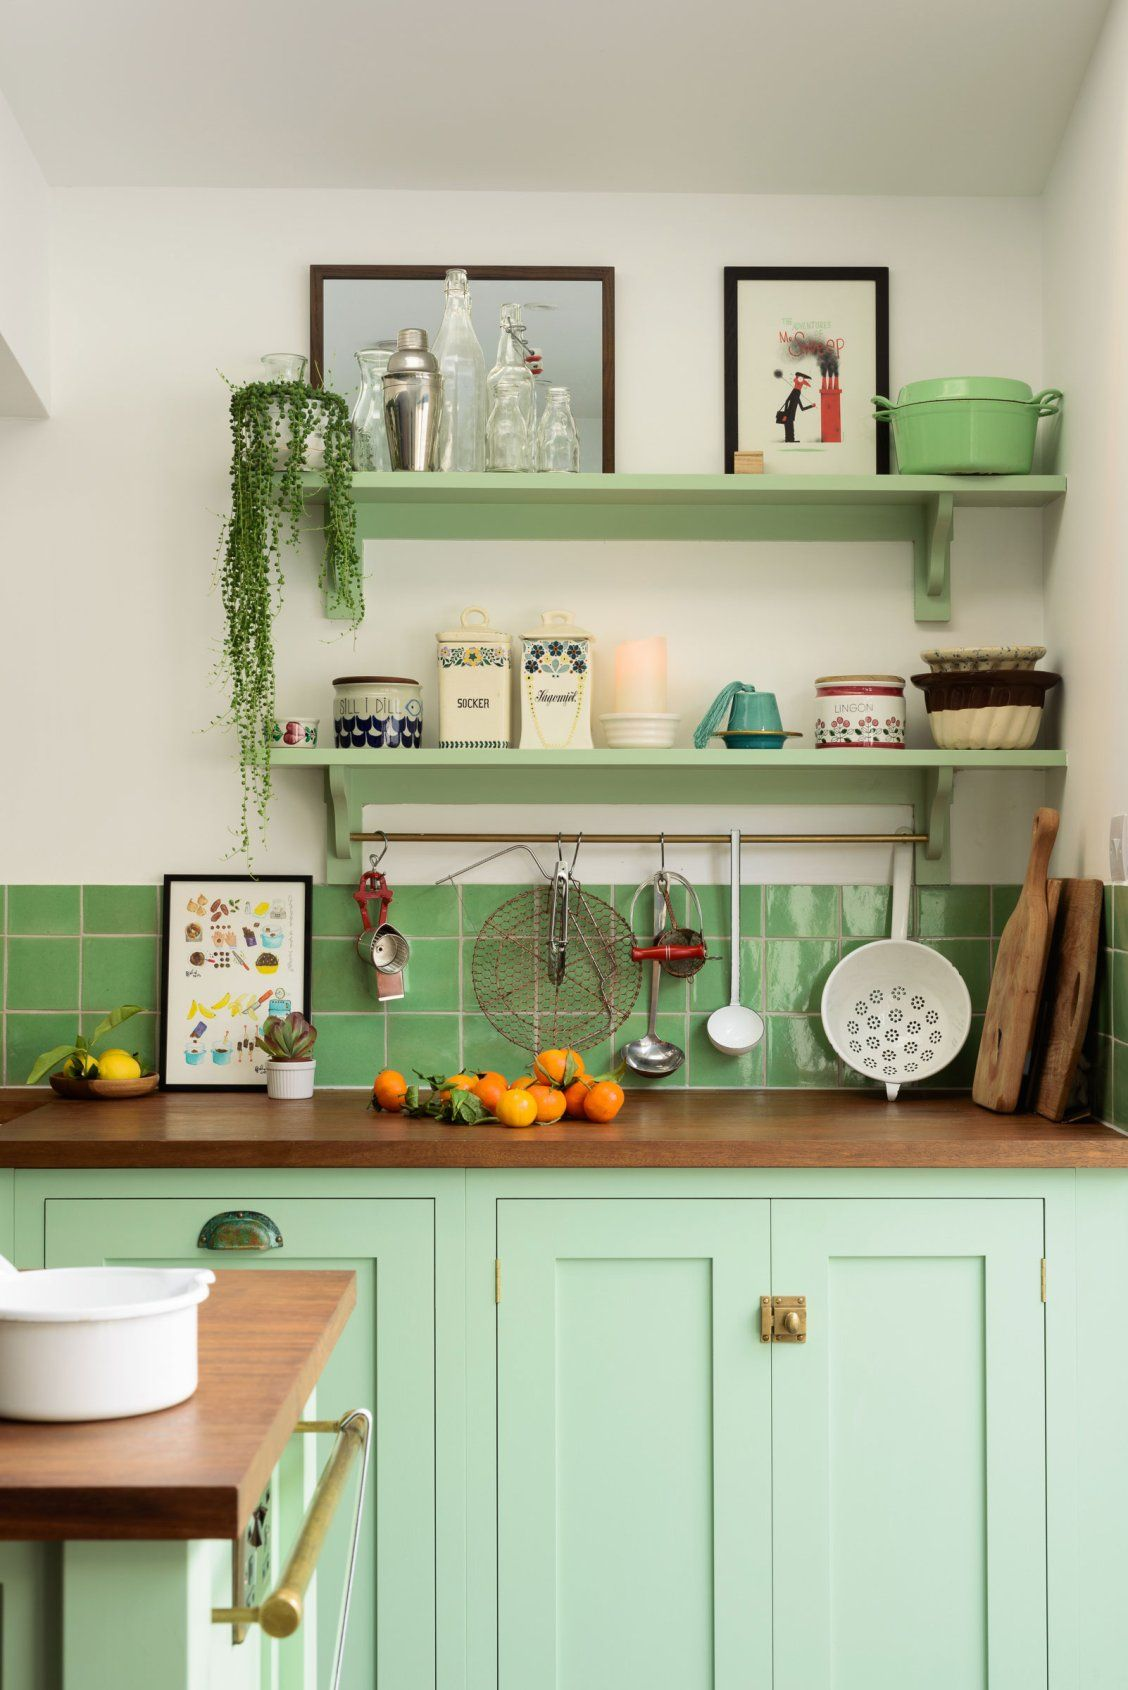 This Is Such A Cheerful Almost Kitschy Kitchen Isn T It Definitely Has Those Retro Vibes With The Pea Green Backsplash Tile And Cabinets